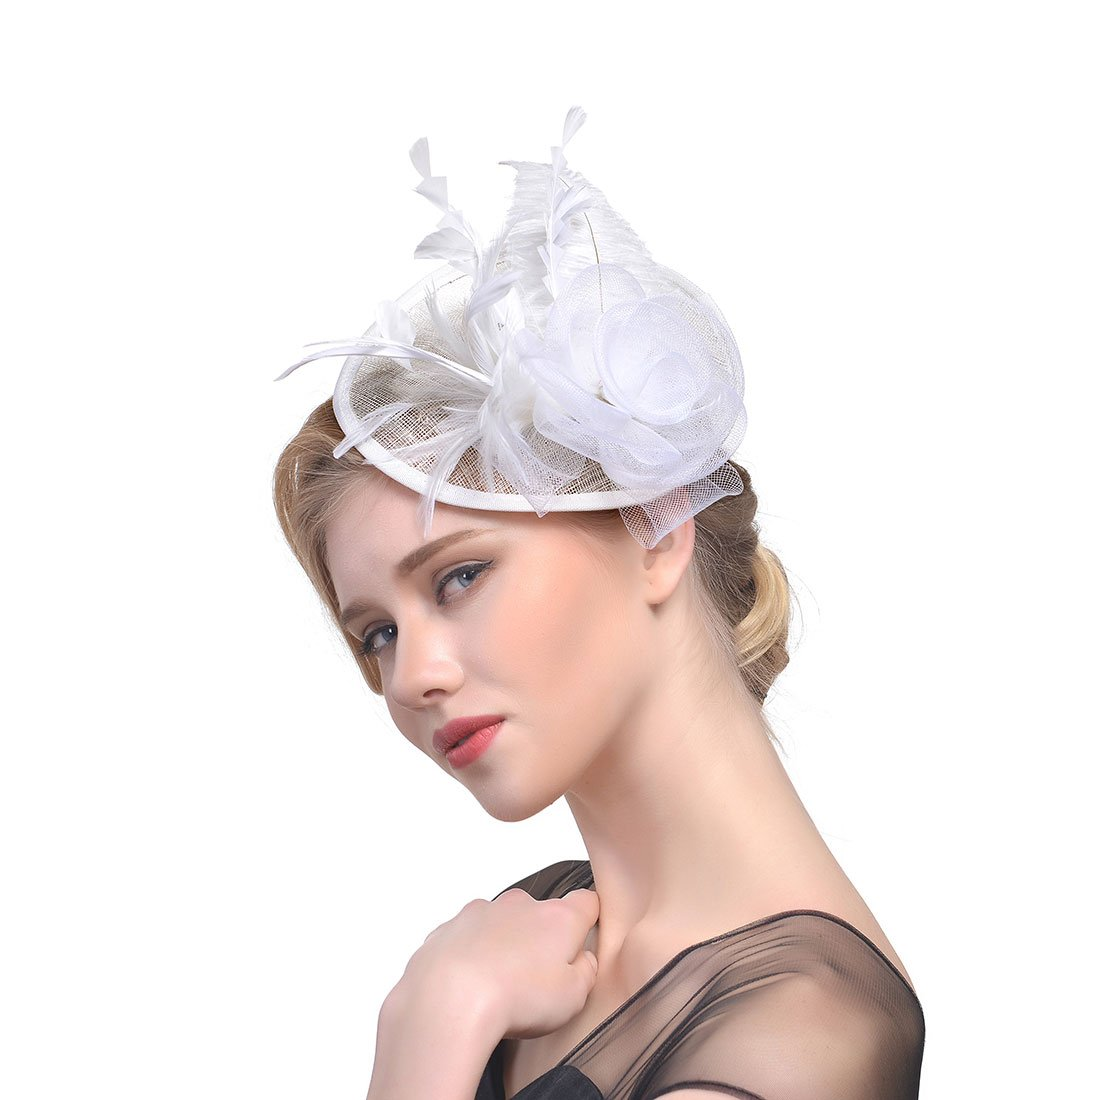 Flower Prom Party Headpieces Feather Fascinator Top Hat for Women (White)